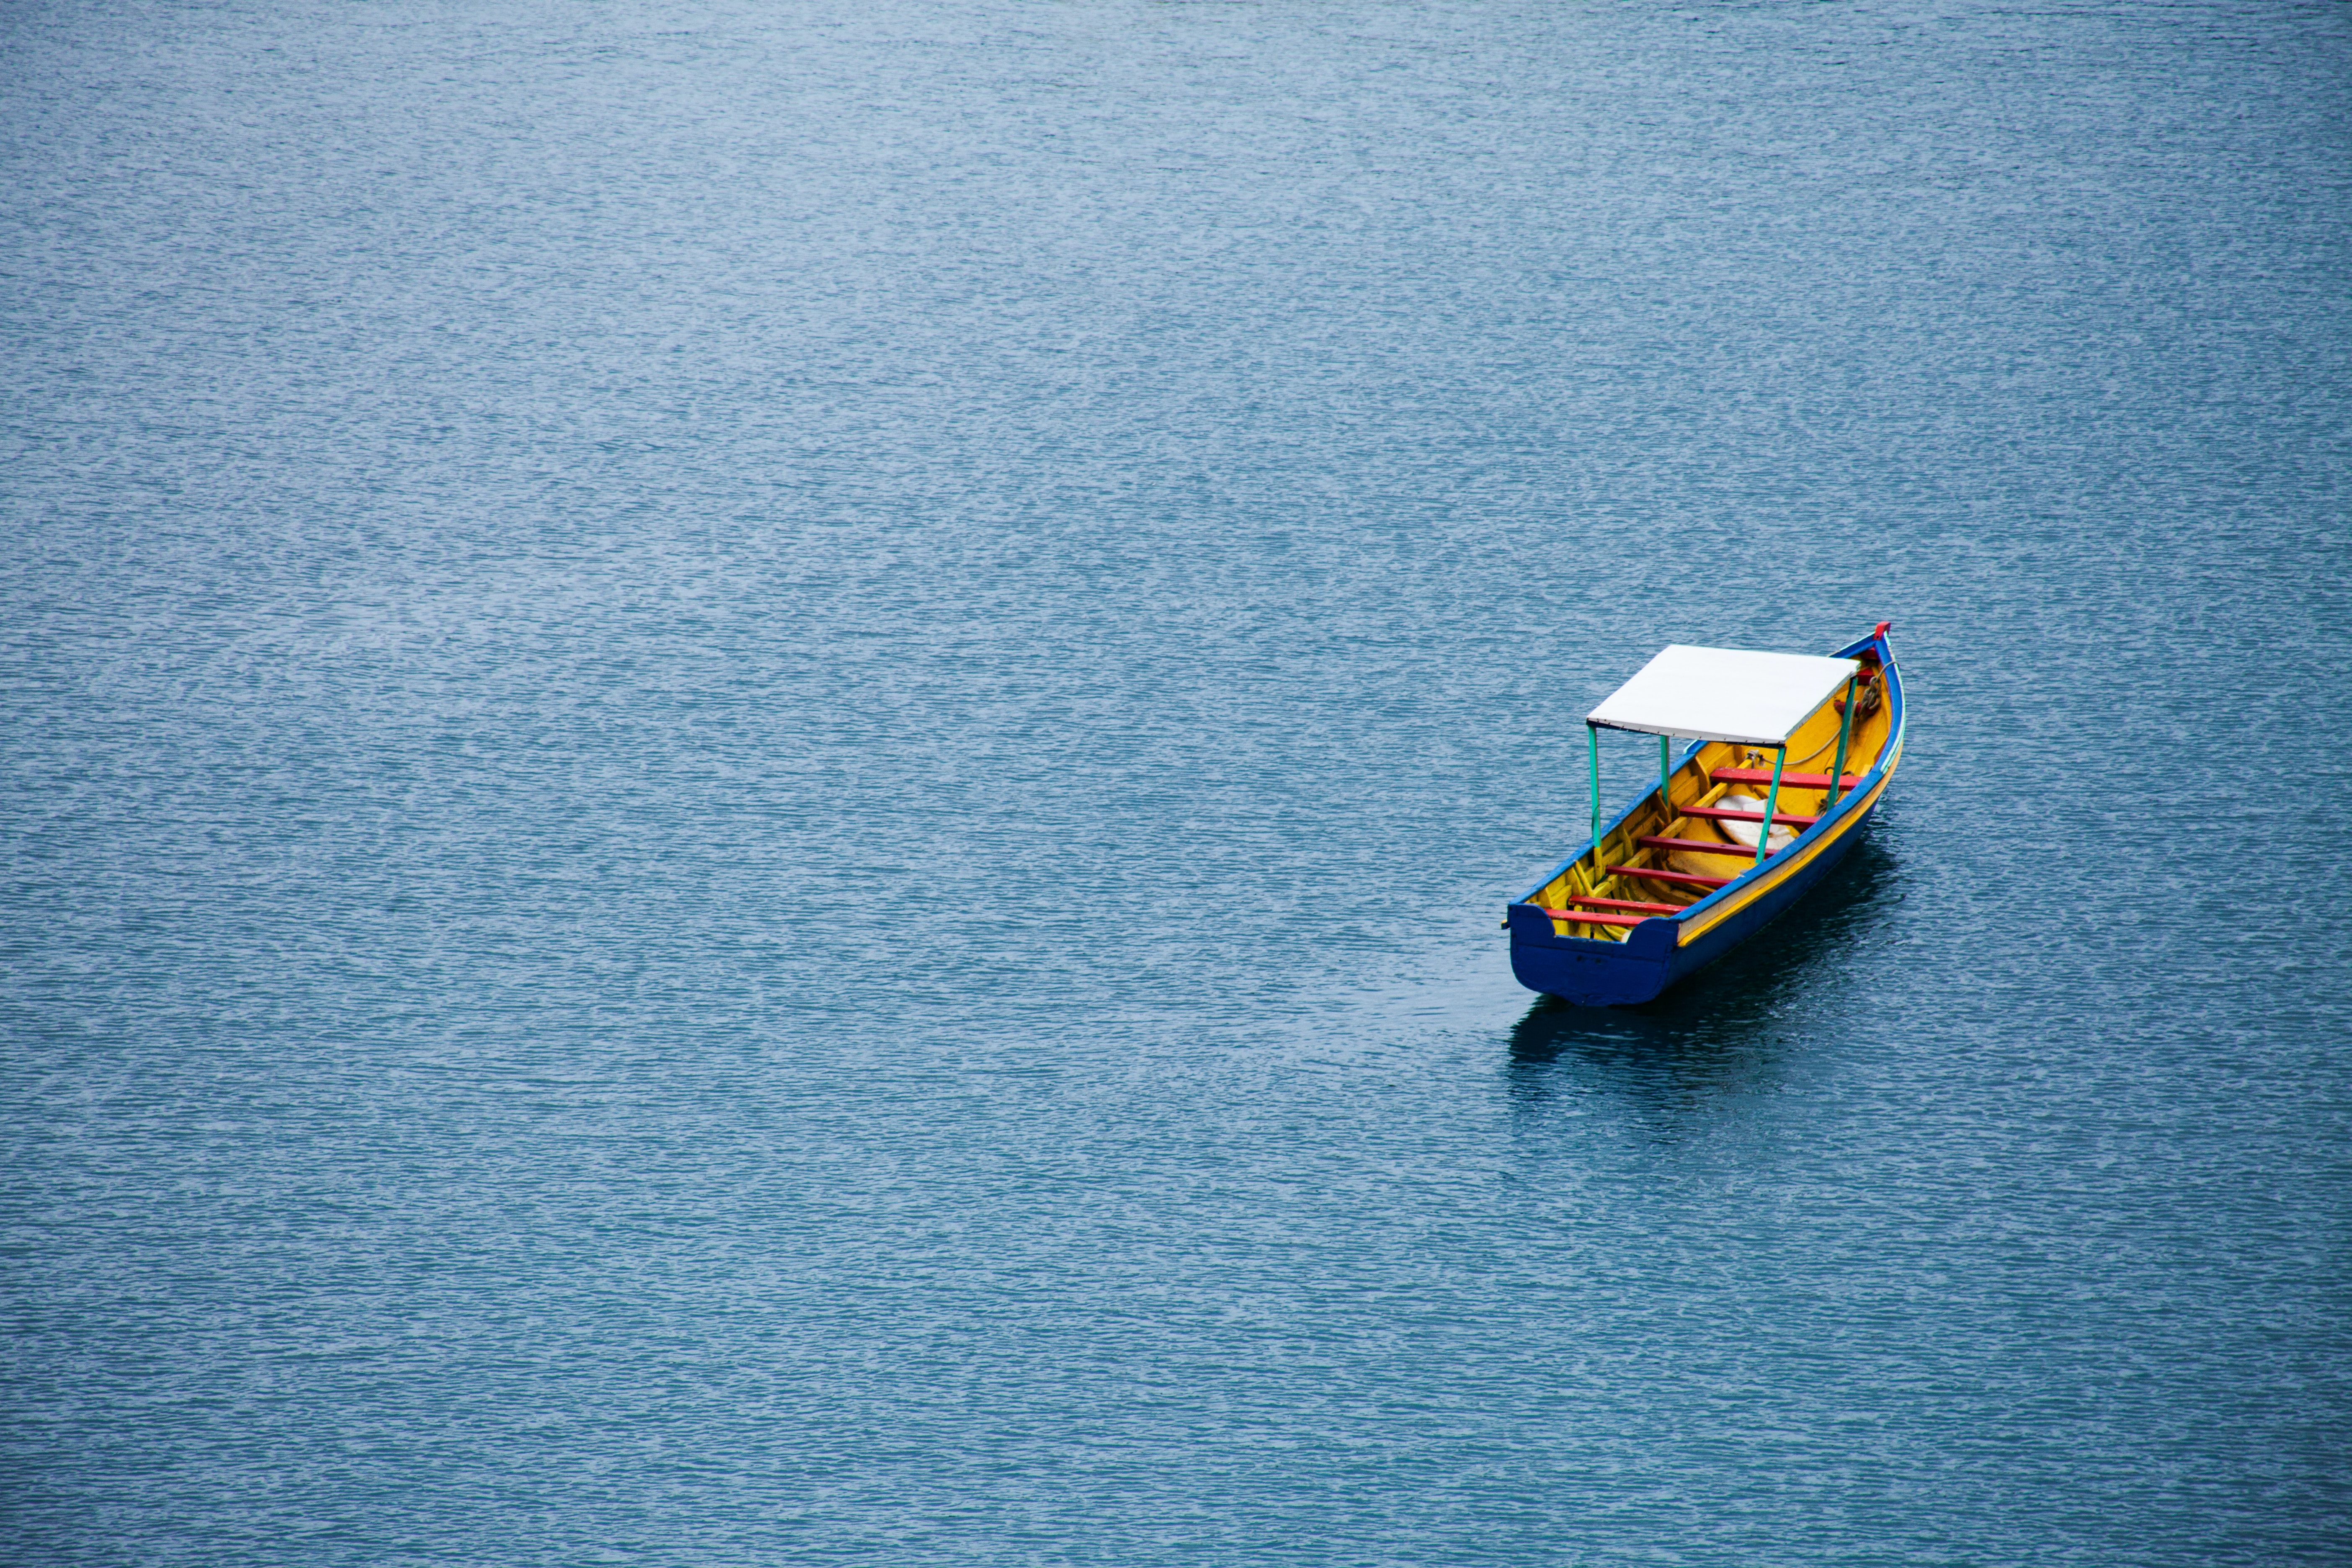 brown and blue boat on water at daytime